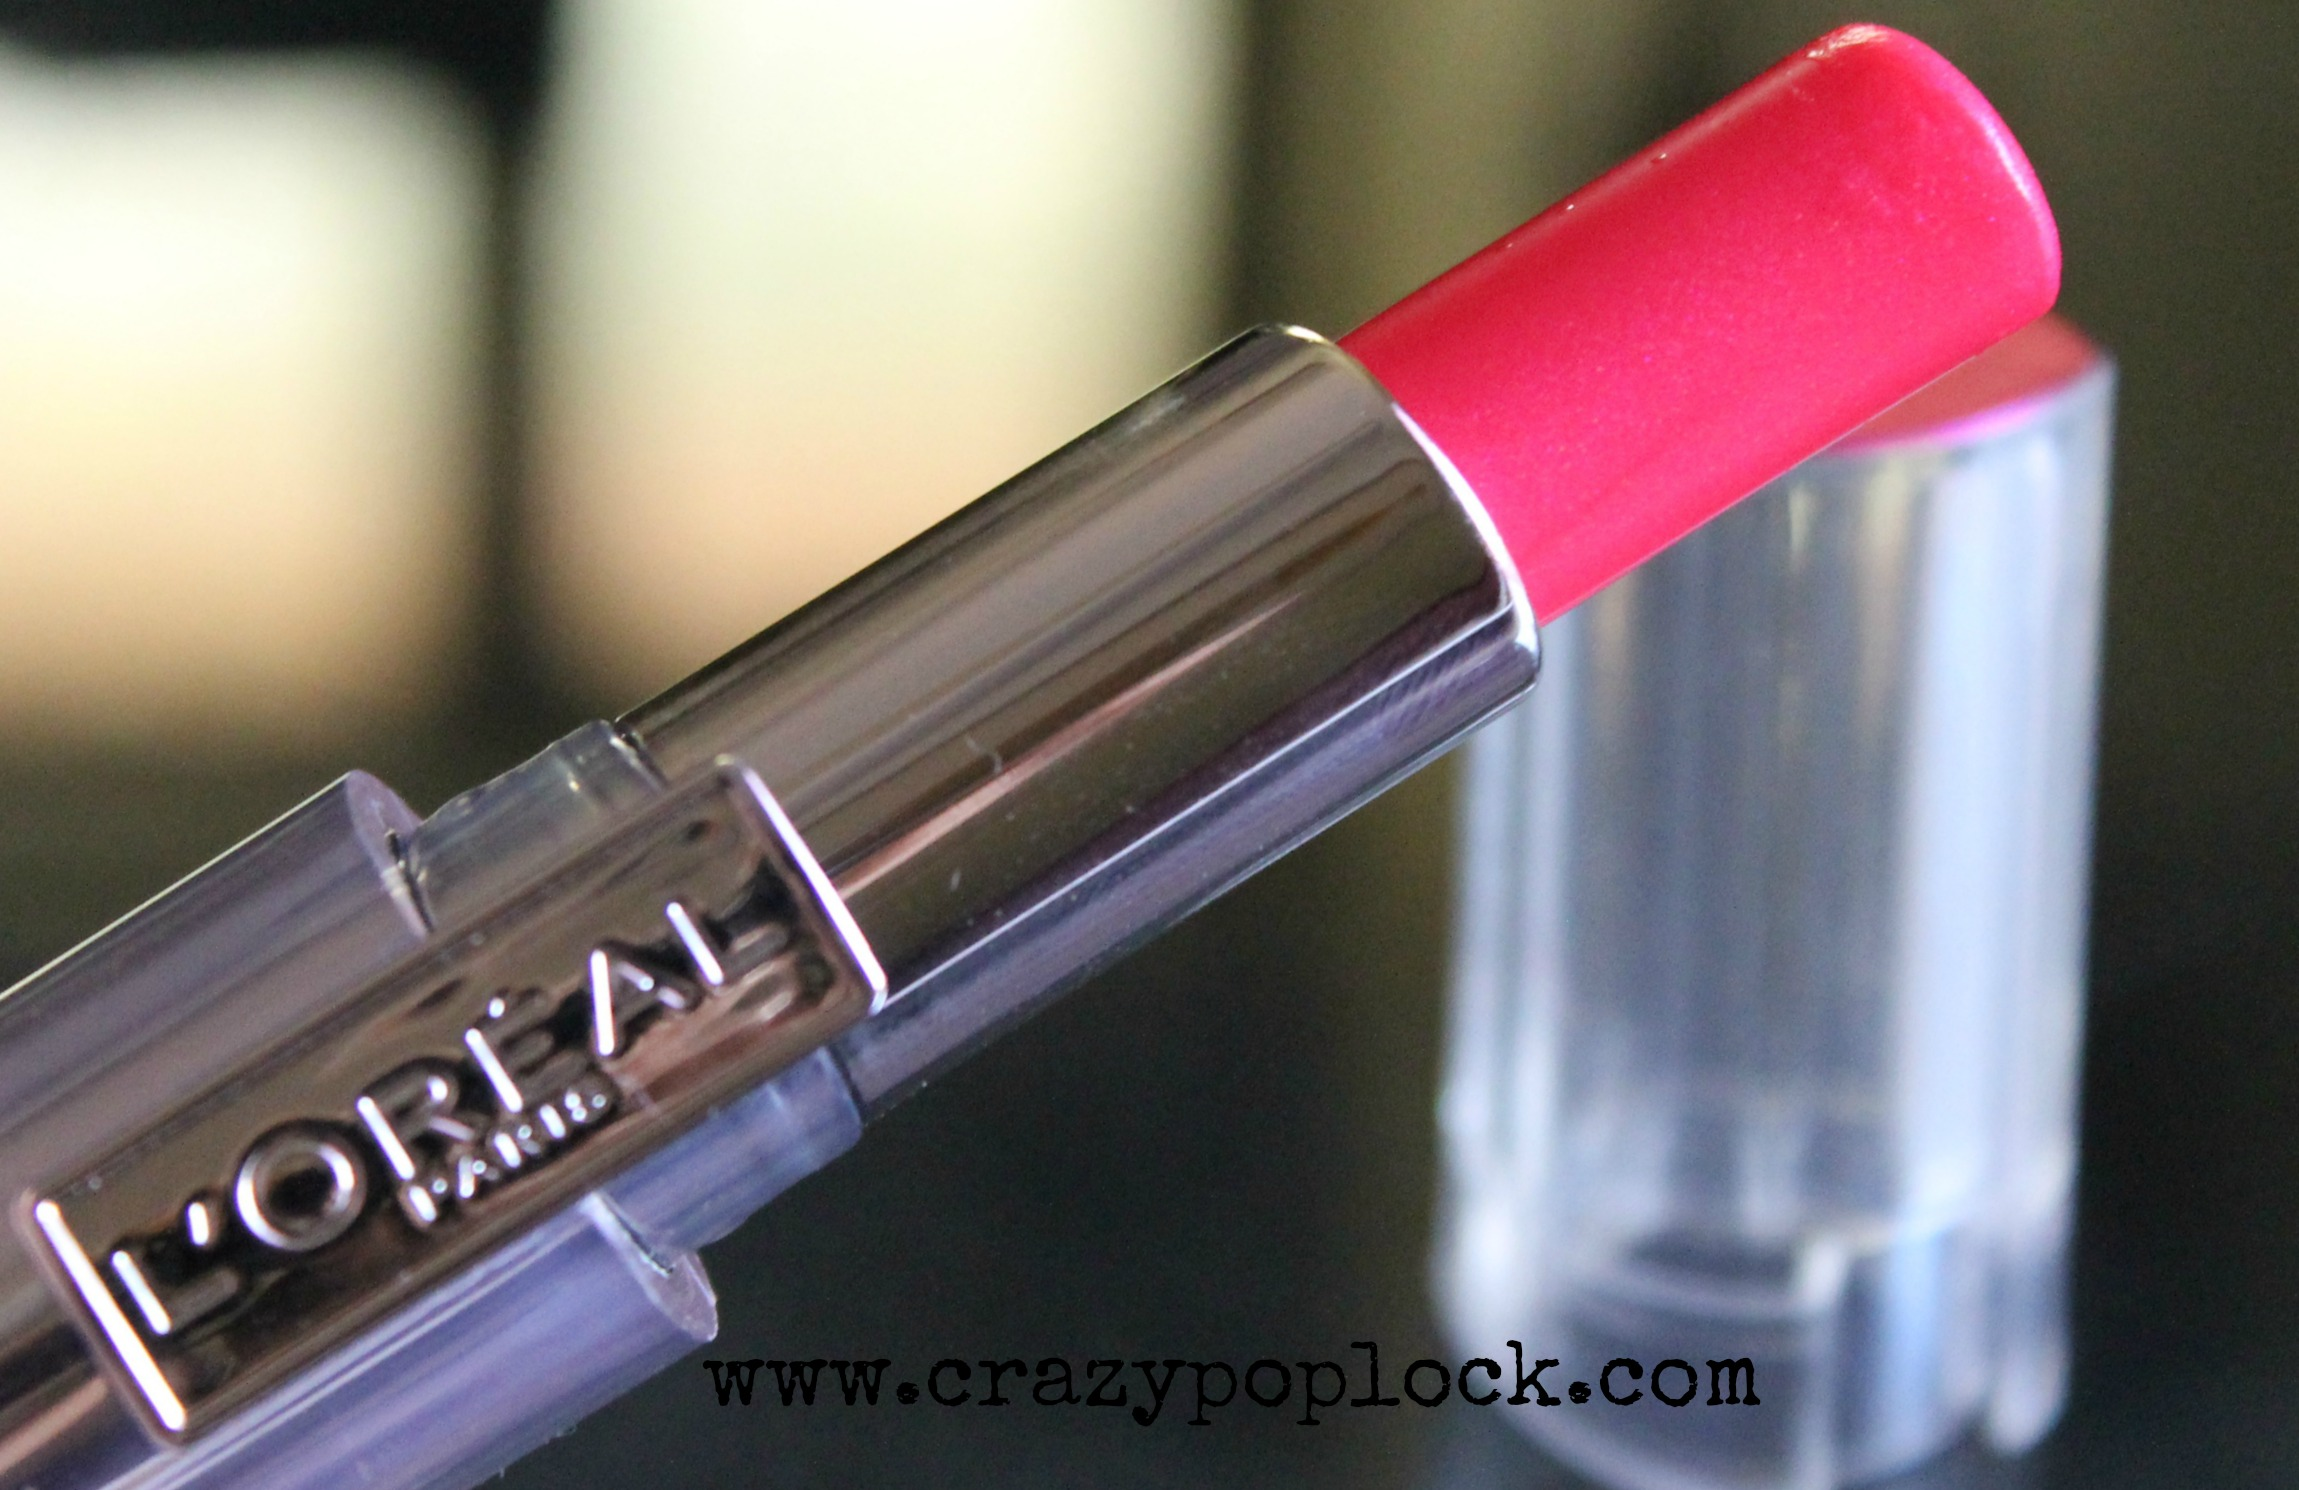 Loreal color caresse by color rich lipstick - Someone Who Are Only Looking For A Hint Of Color Then I Would Recommend L Oreal Caresse Lipstick Range